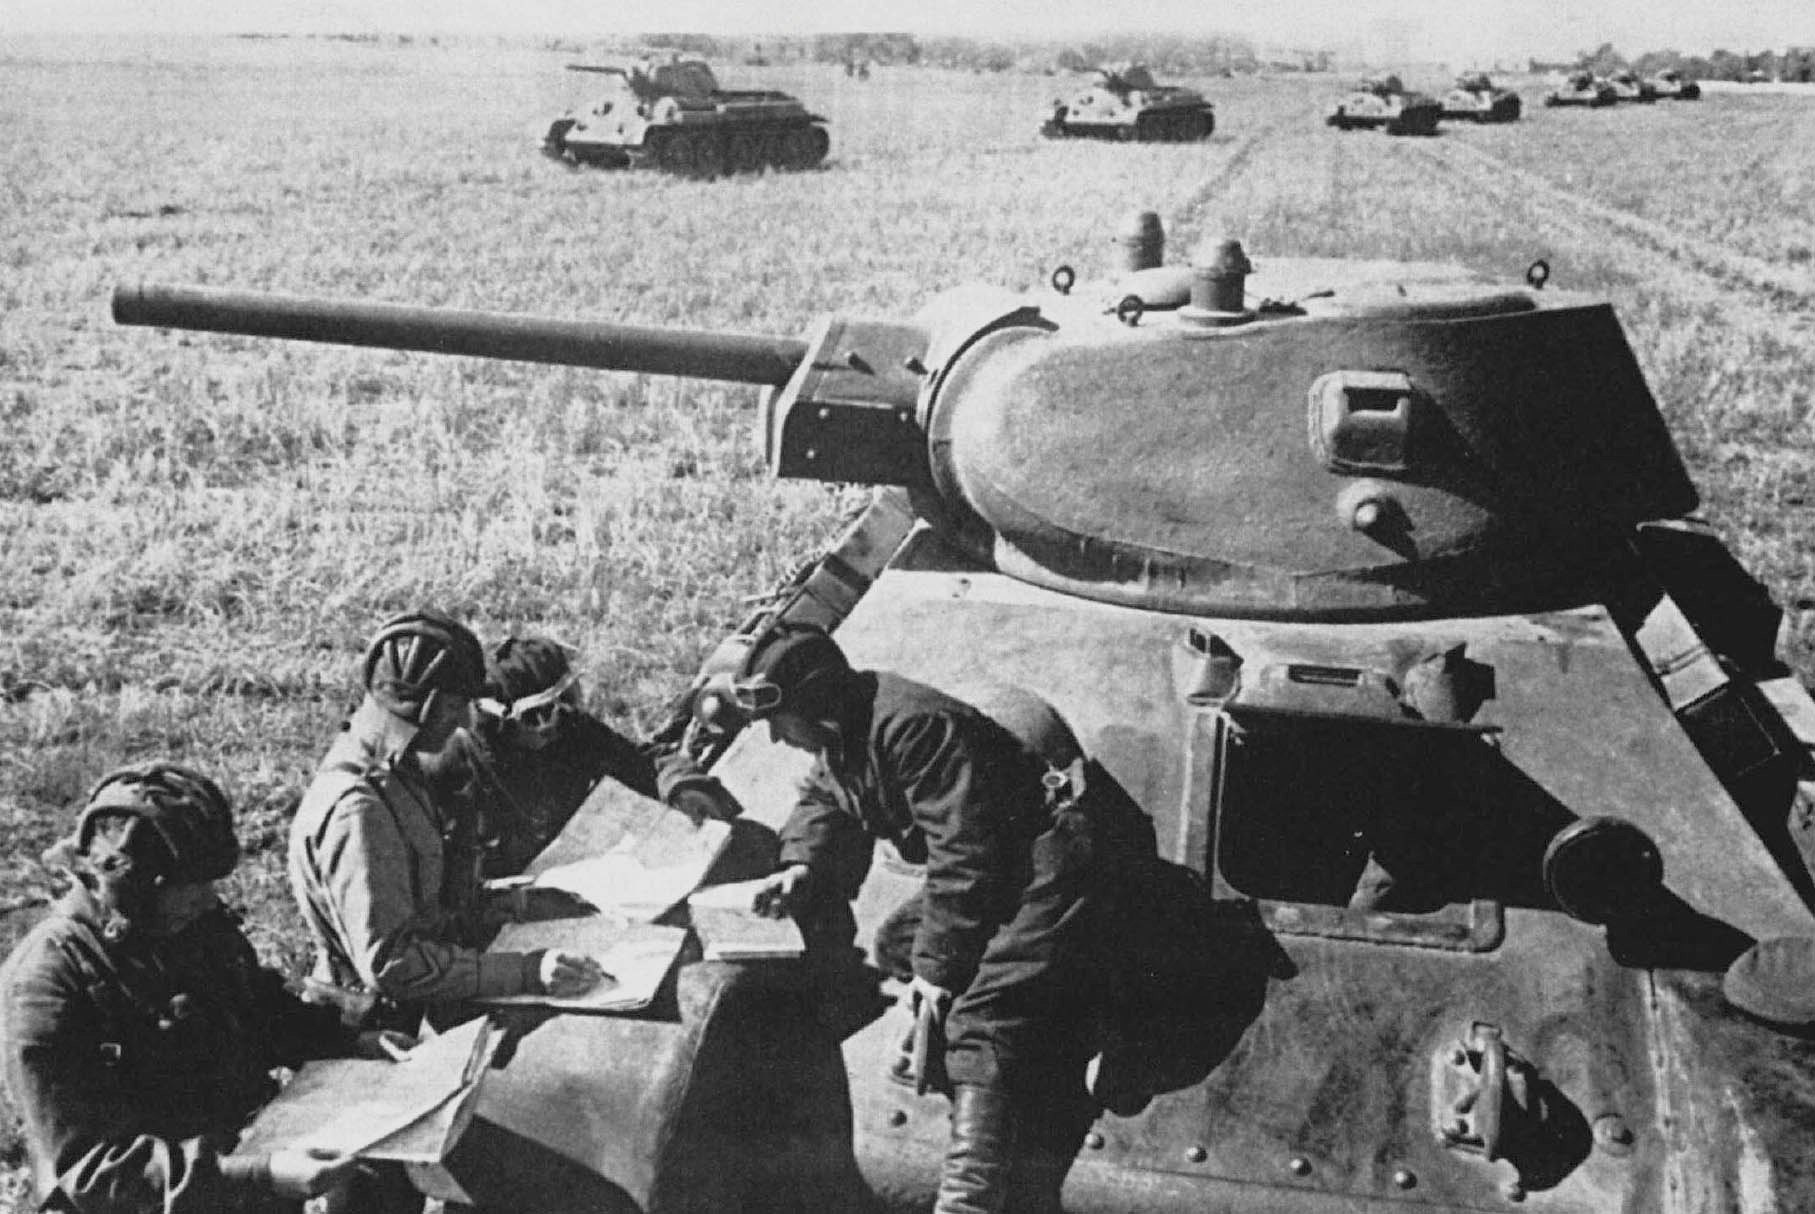 Soviet tanks in training